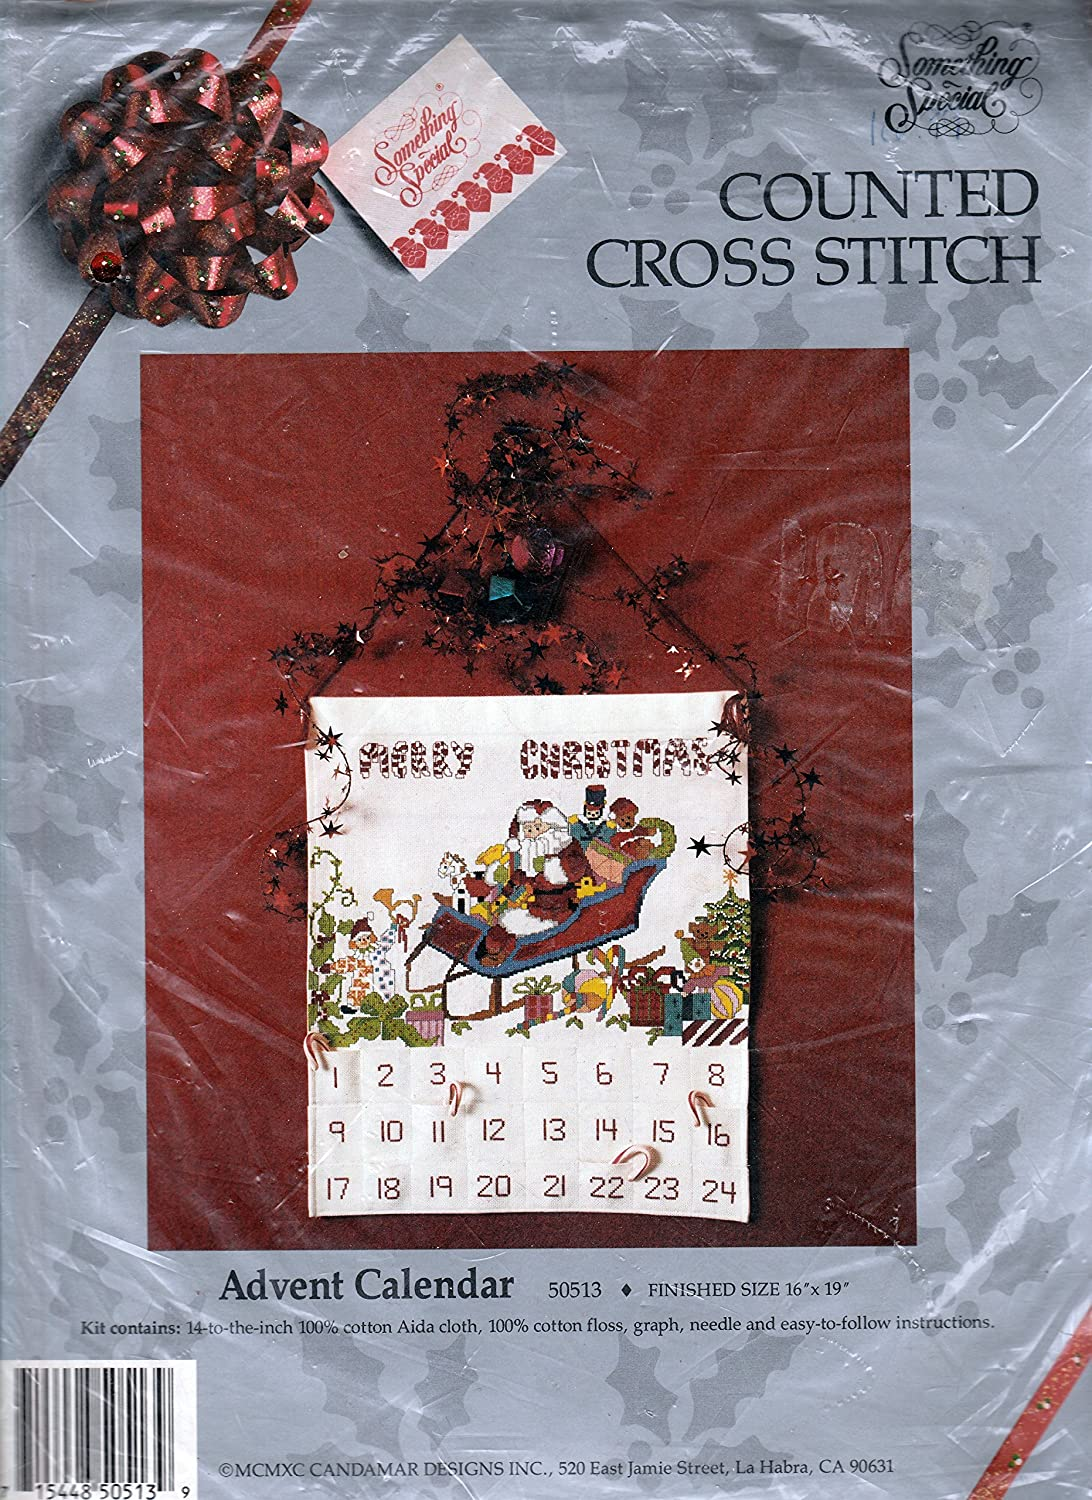 Candamar Something Special Counted Cross Stitch Advent Calendar Kit